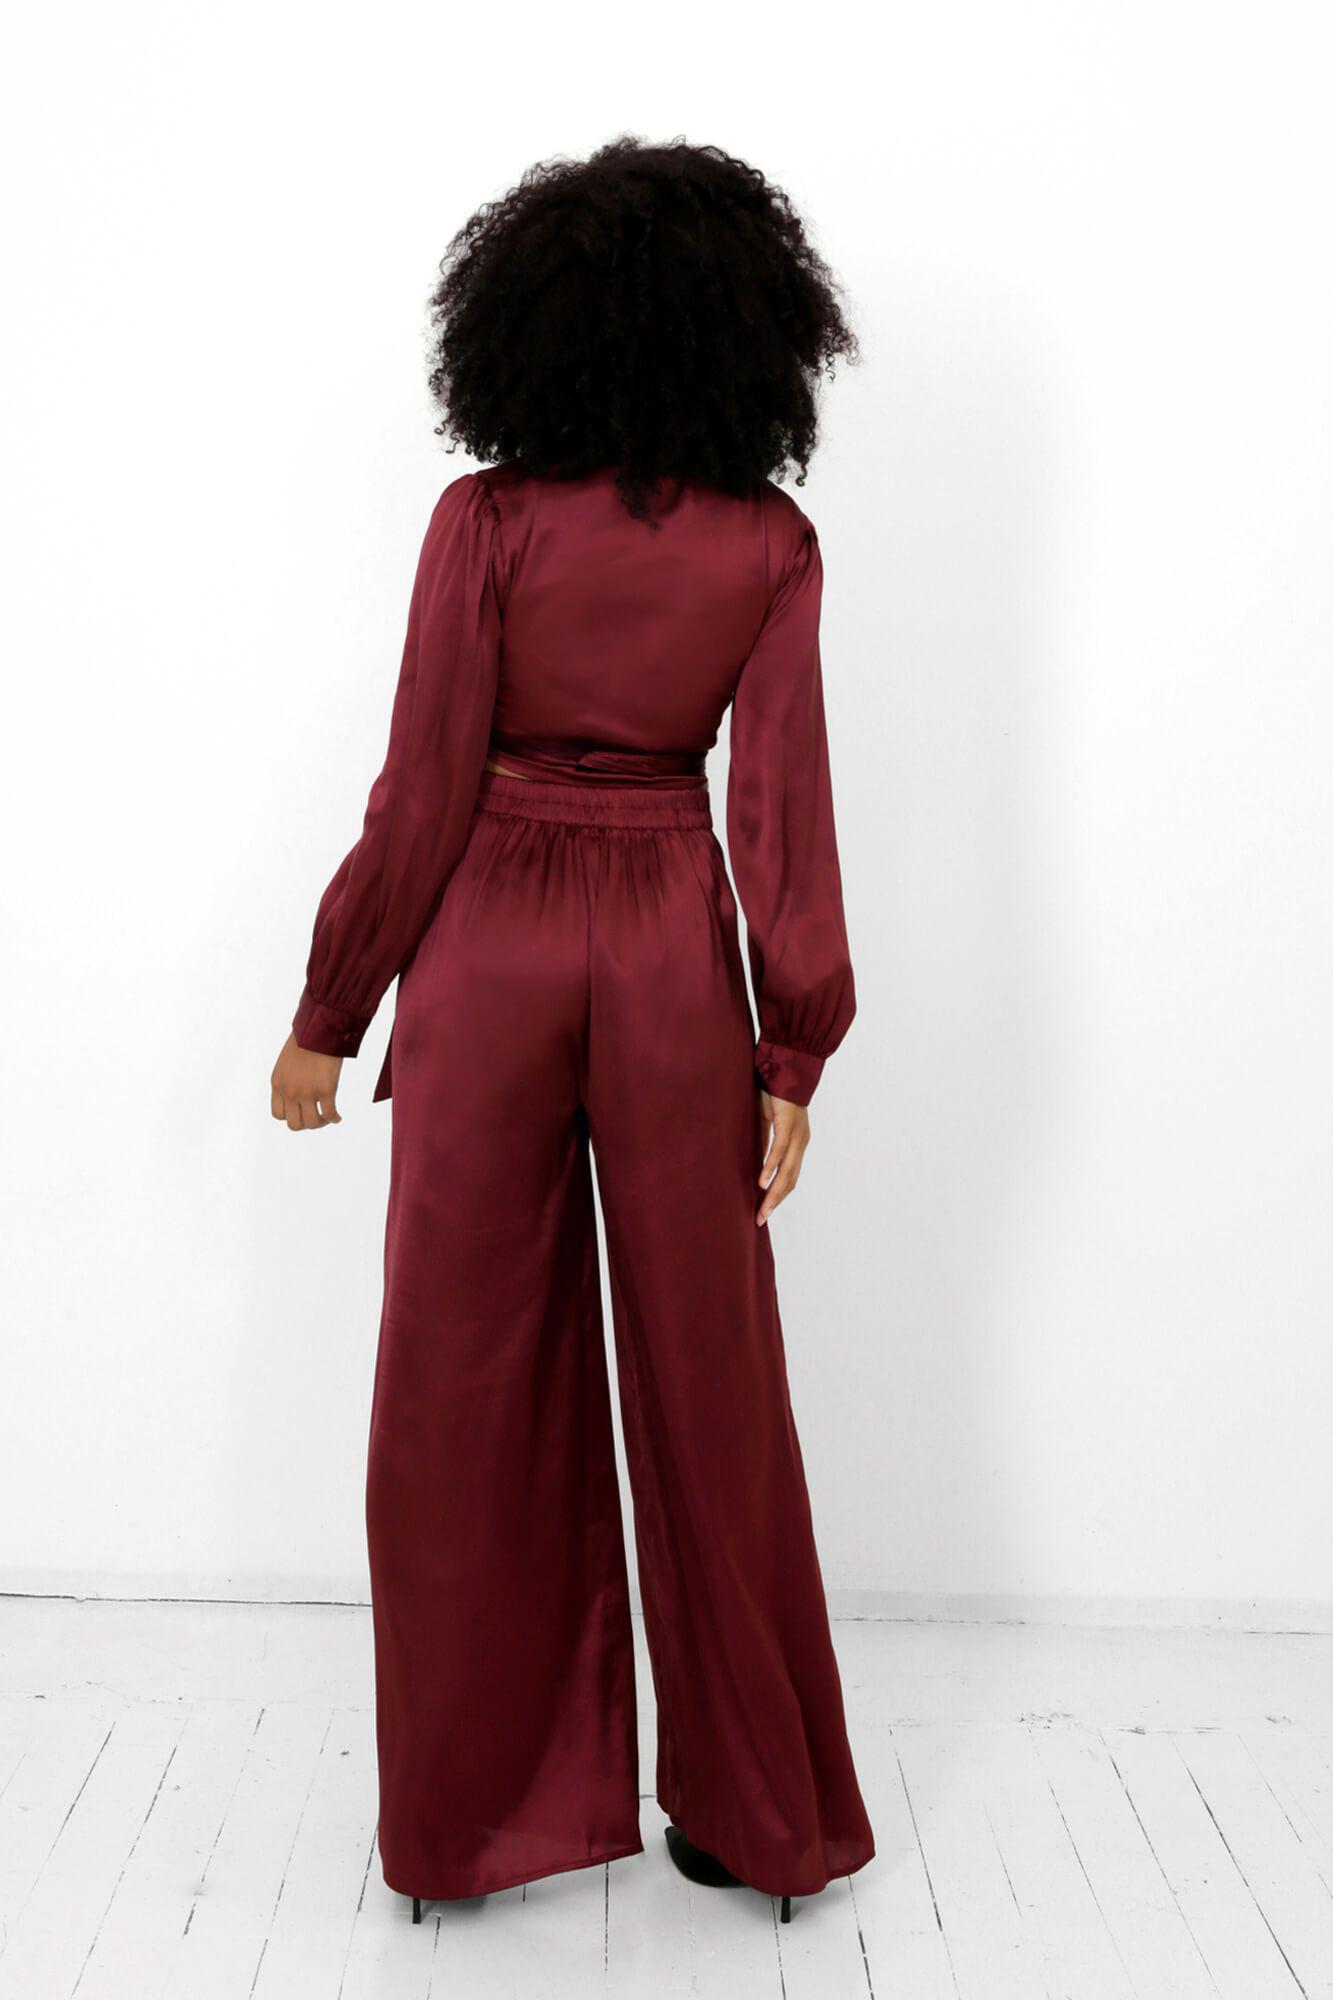 Rooibos Isa Wrap Top and Dora Pants Two Piece Set 3